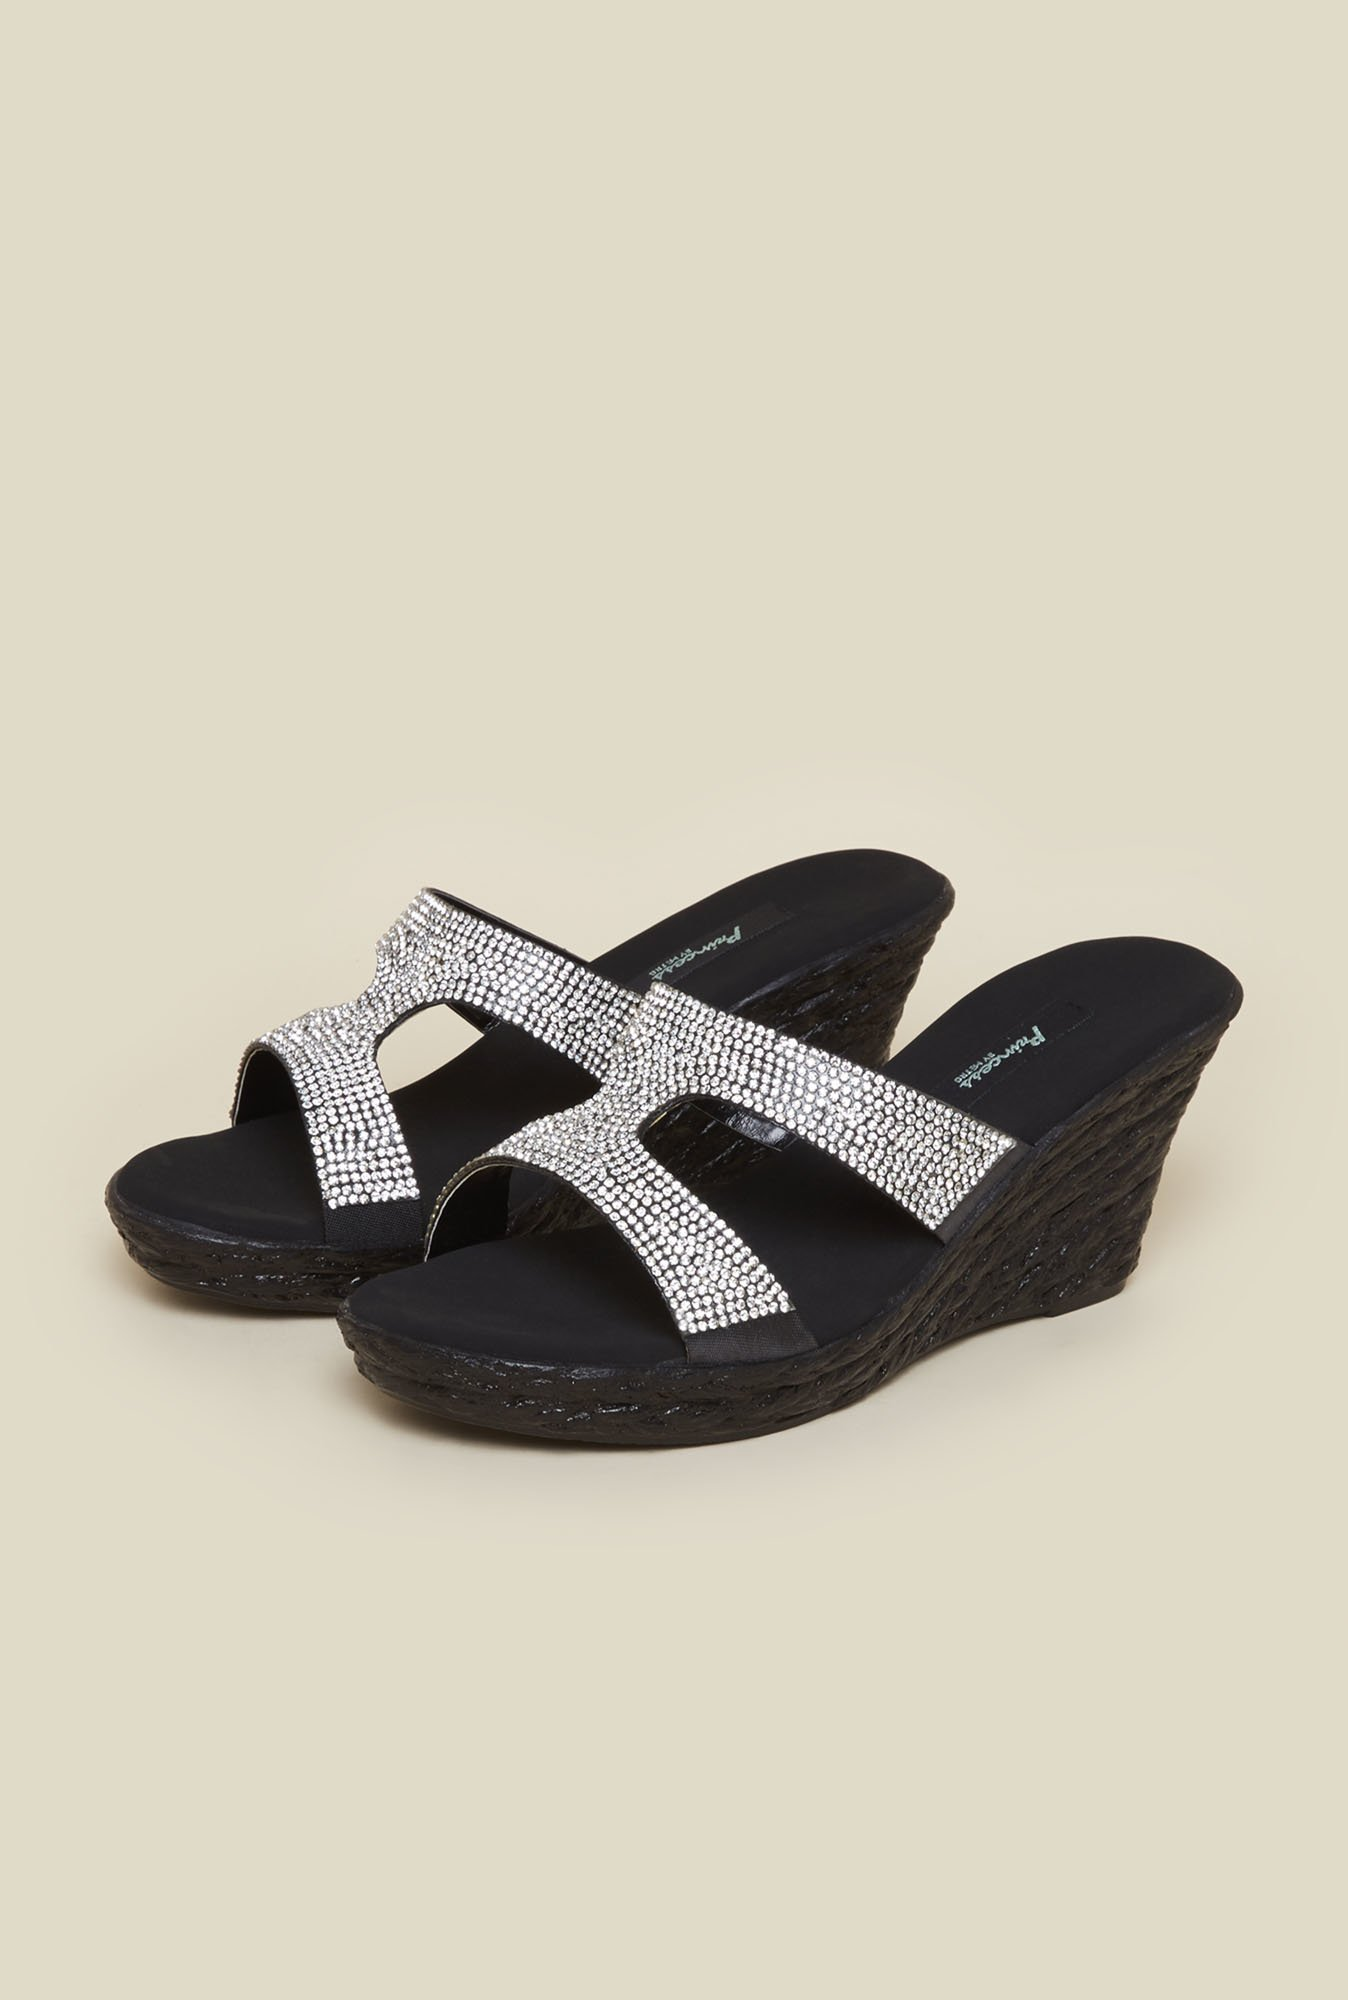 Princess by Metro Black Mule Wedge Beaded Sandal